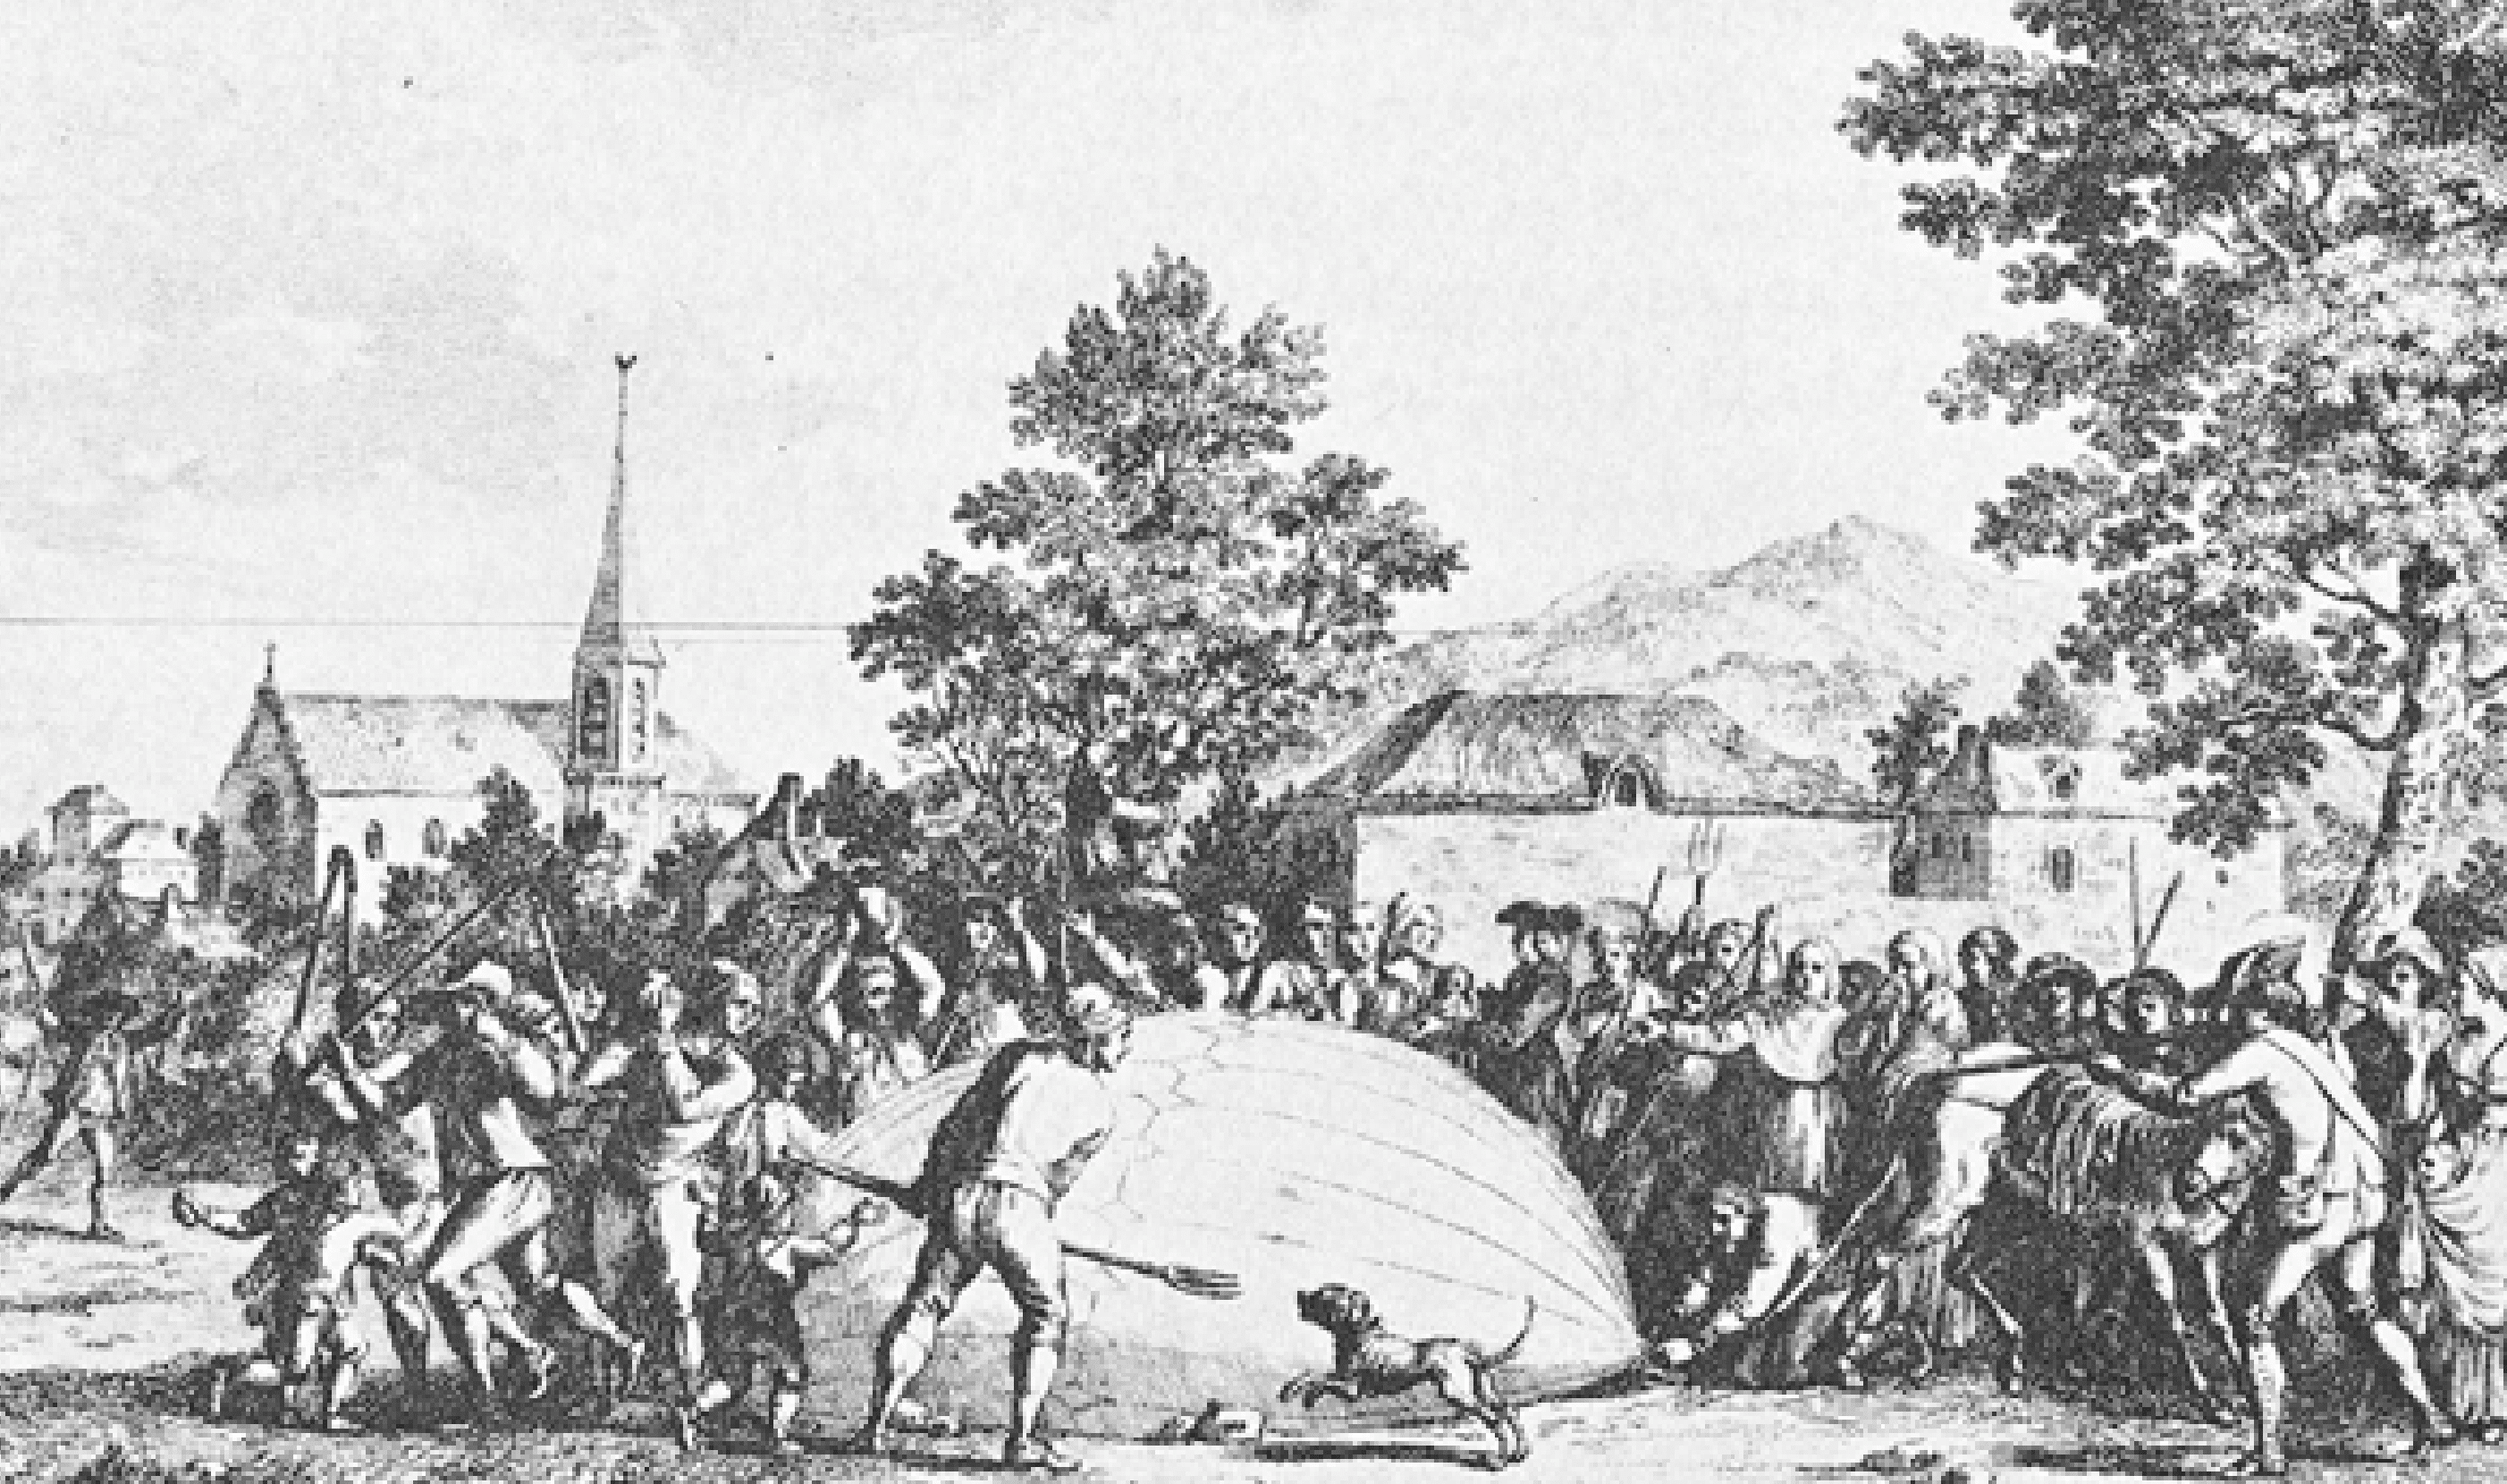 montgolfier brothers first hot air balloon destroyed